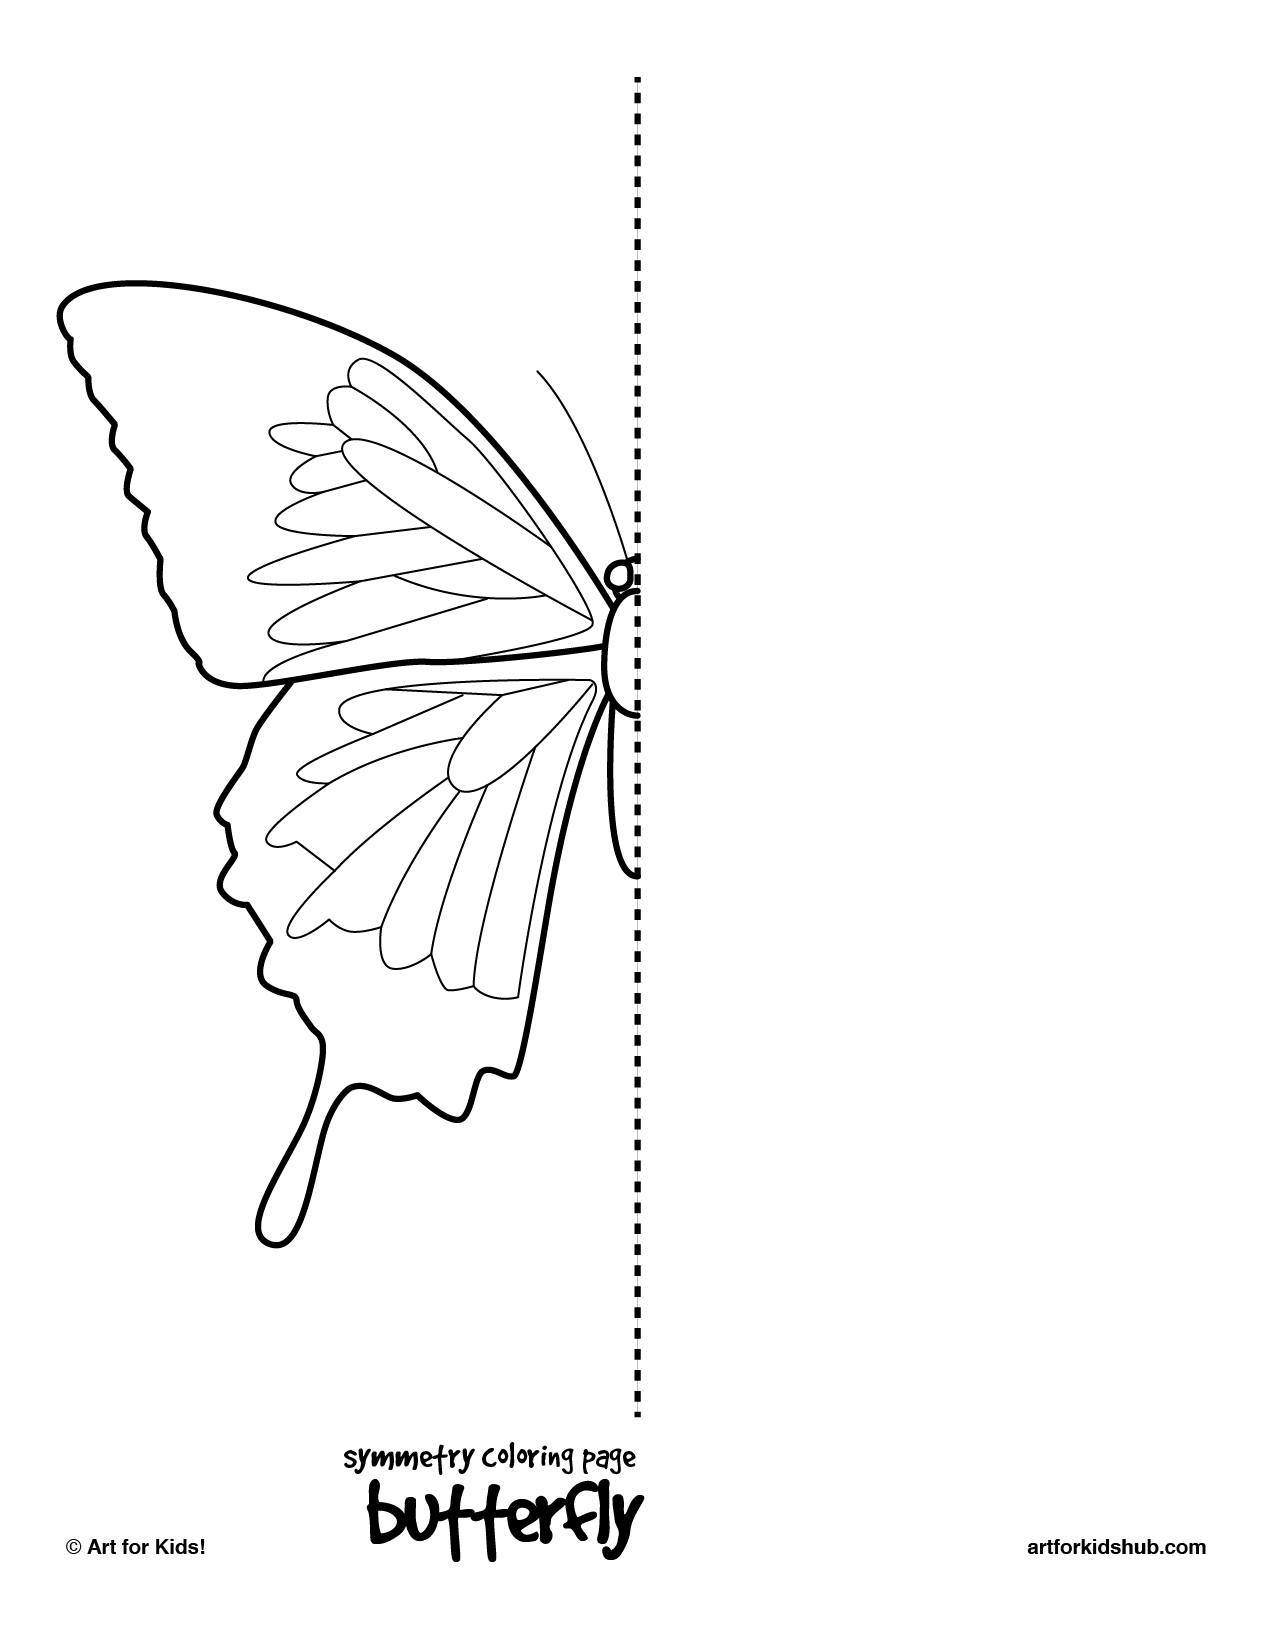 10 free coloring pages - bug symmetry